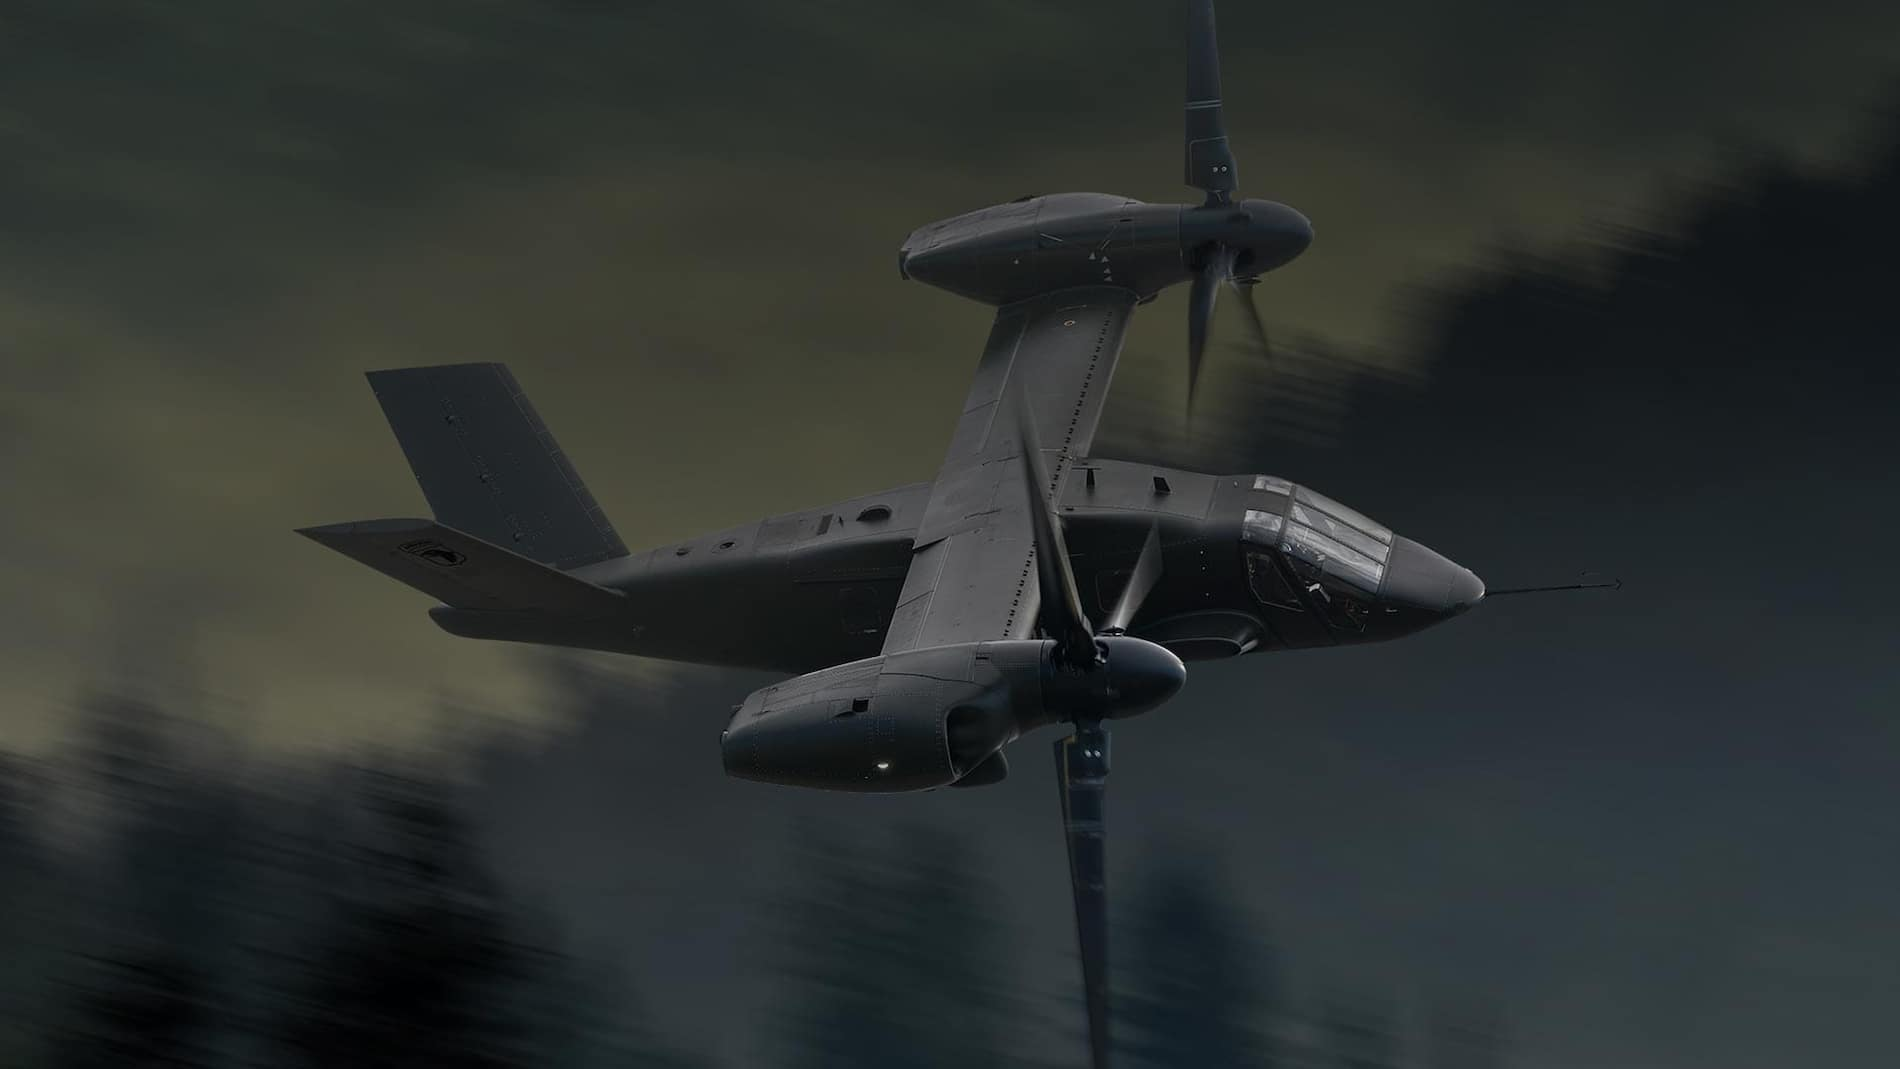 Bell V-280 Valor hovering showing a fast rope mission - Bell's entry to the U.S. Army's Future Long Range Assault Aircraft for the Future Vertical Lift (FVL) competition.